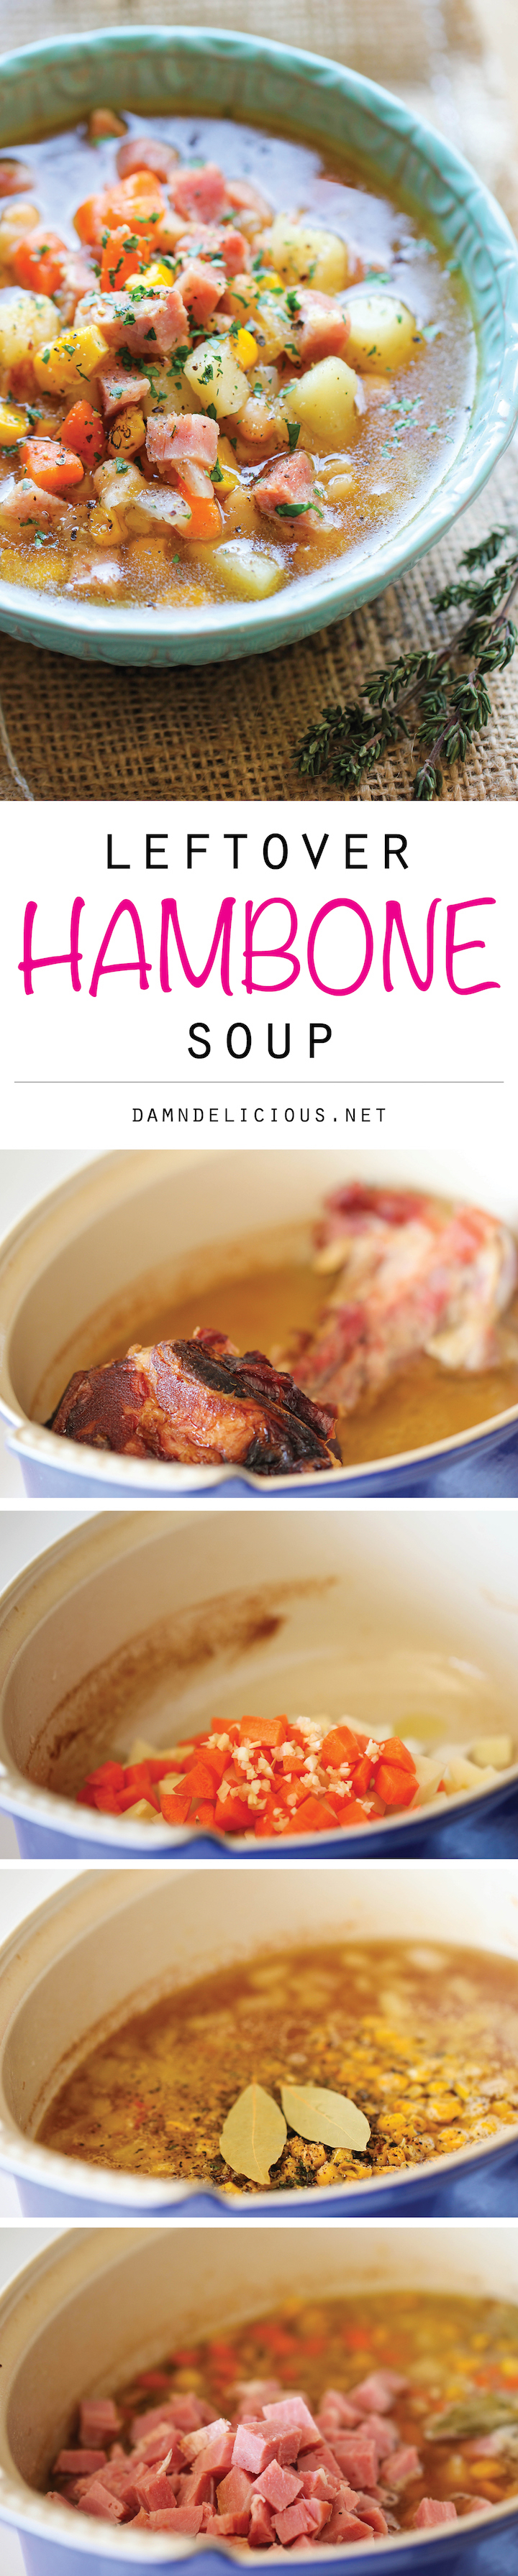 Leftover hambone soup damn delicious leftover hambone soup use up your leftover hambone to make this cozy hearty soup forumfinder Images